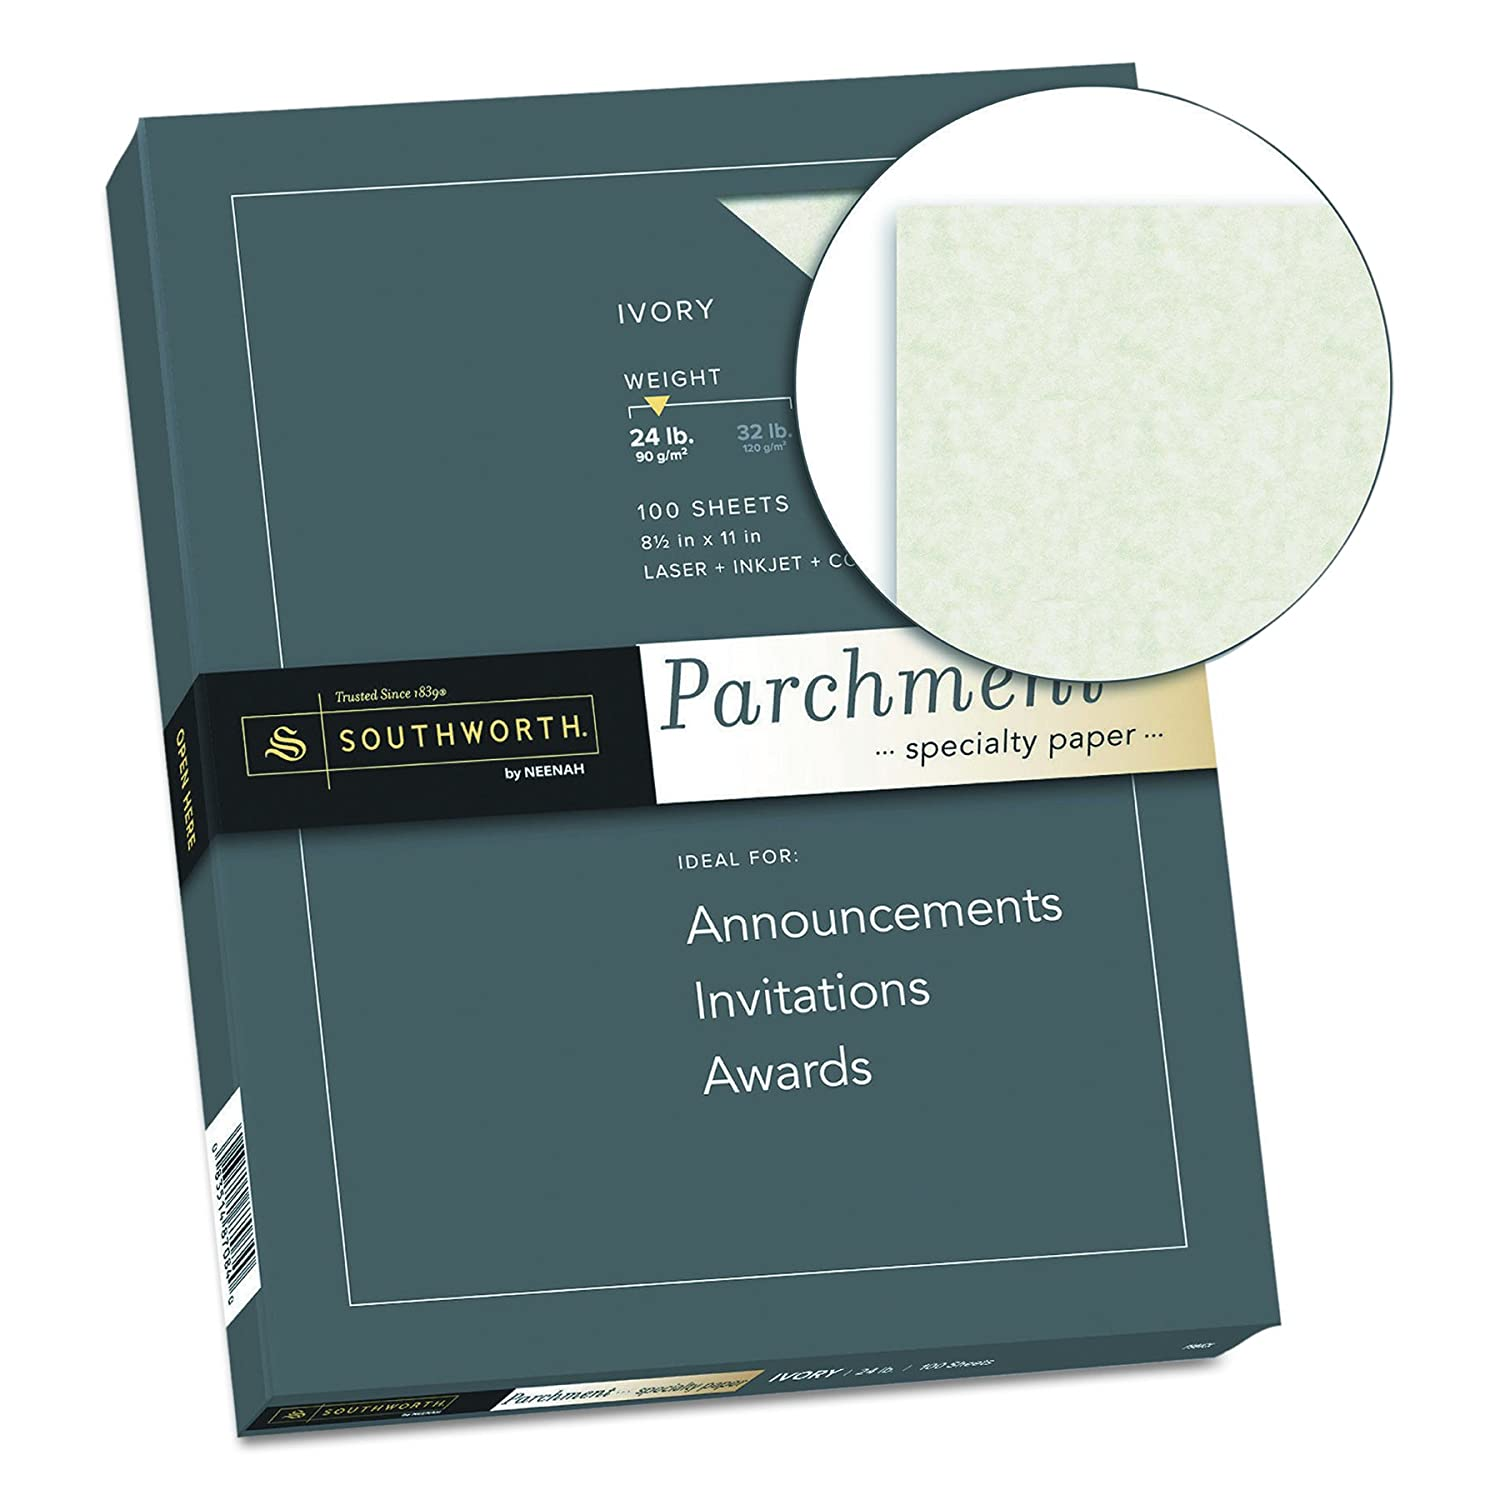 Amazoncom Parchment Specialty Paper 24 lbs